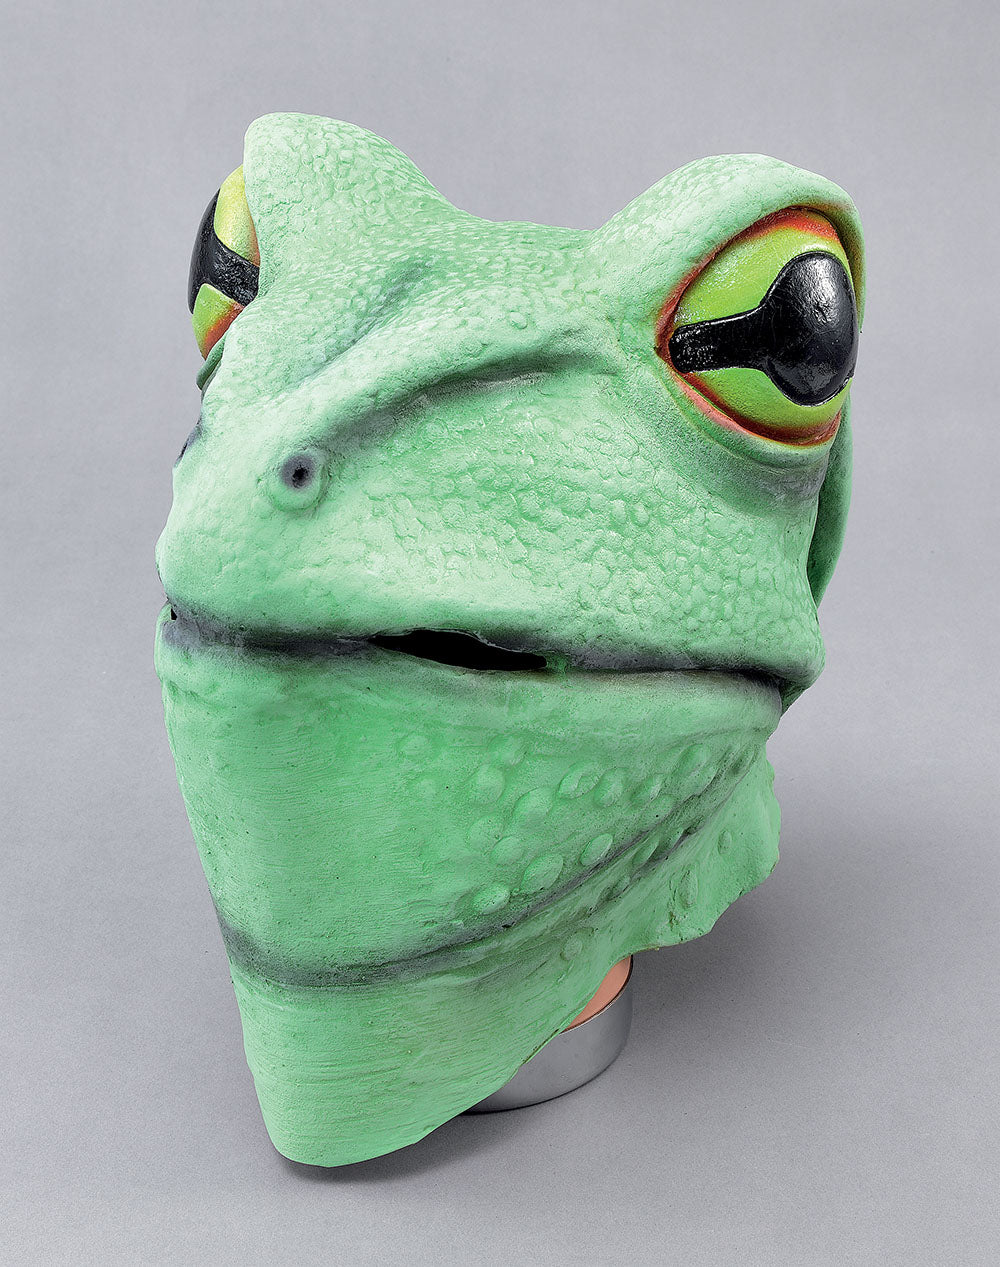 A full face rubber mask of a green frog with yellow eyes